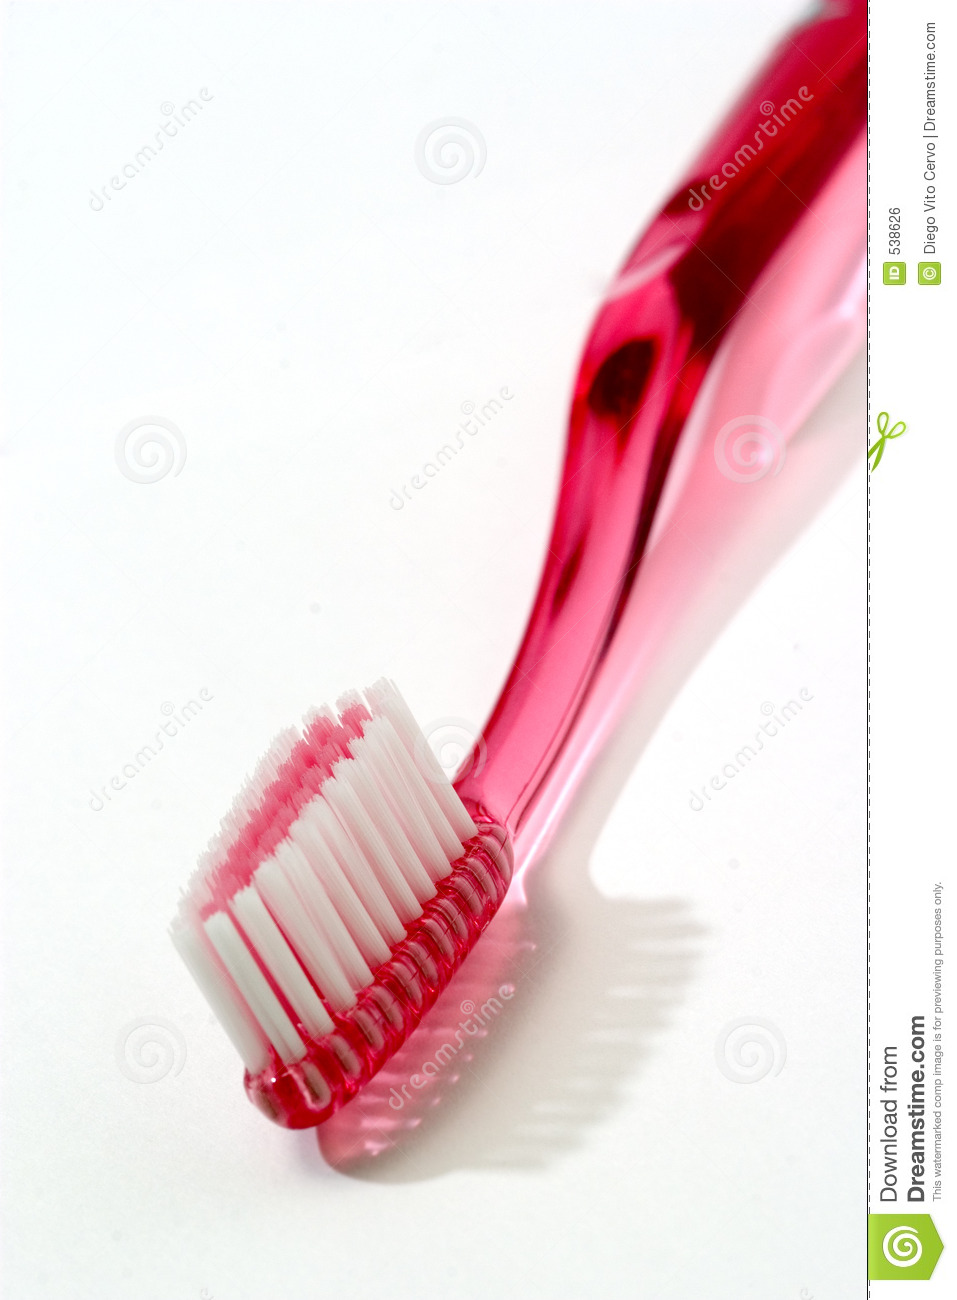 Toothbrushes04